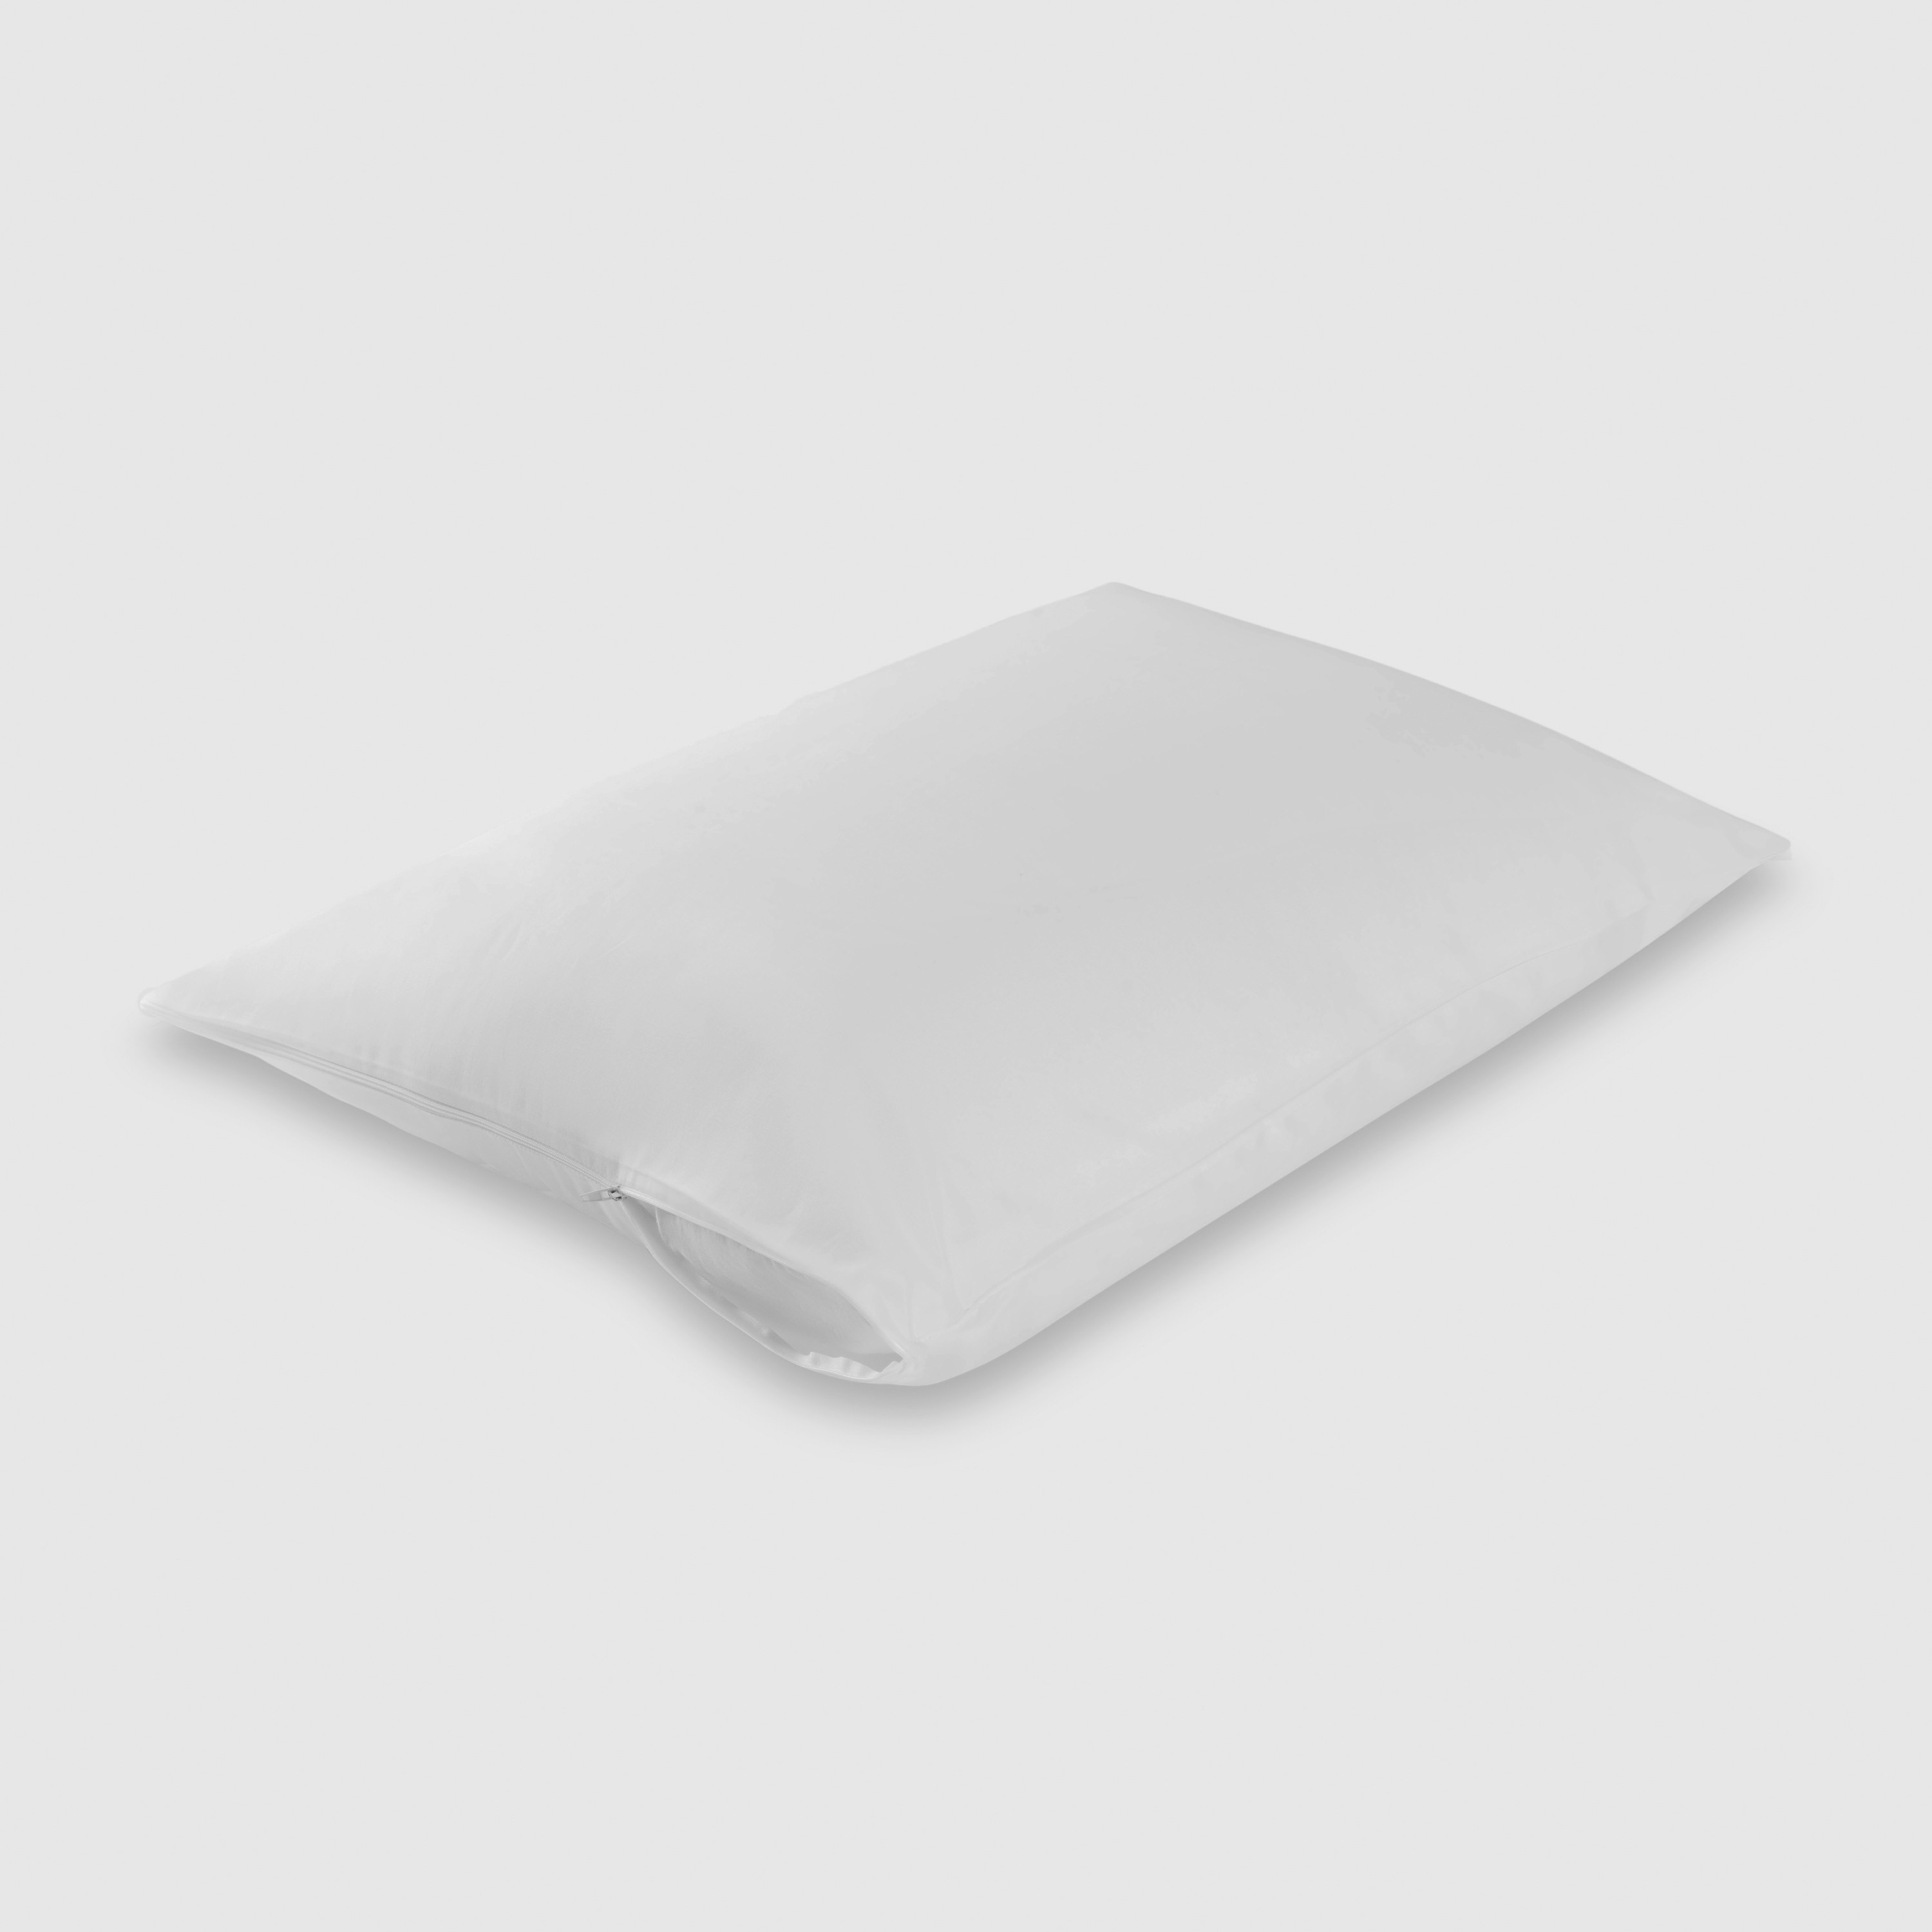 Pillow protection